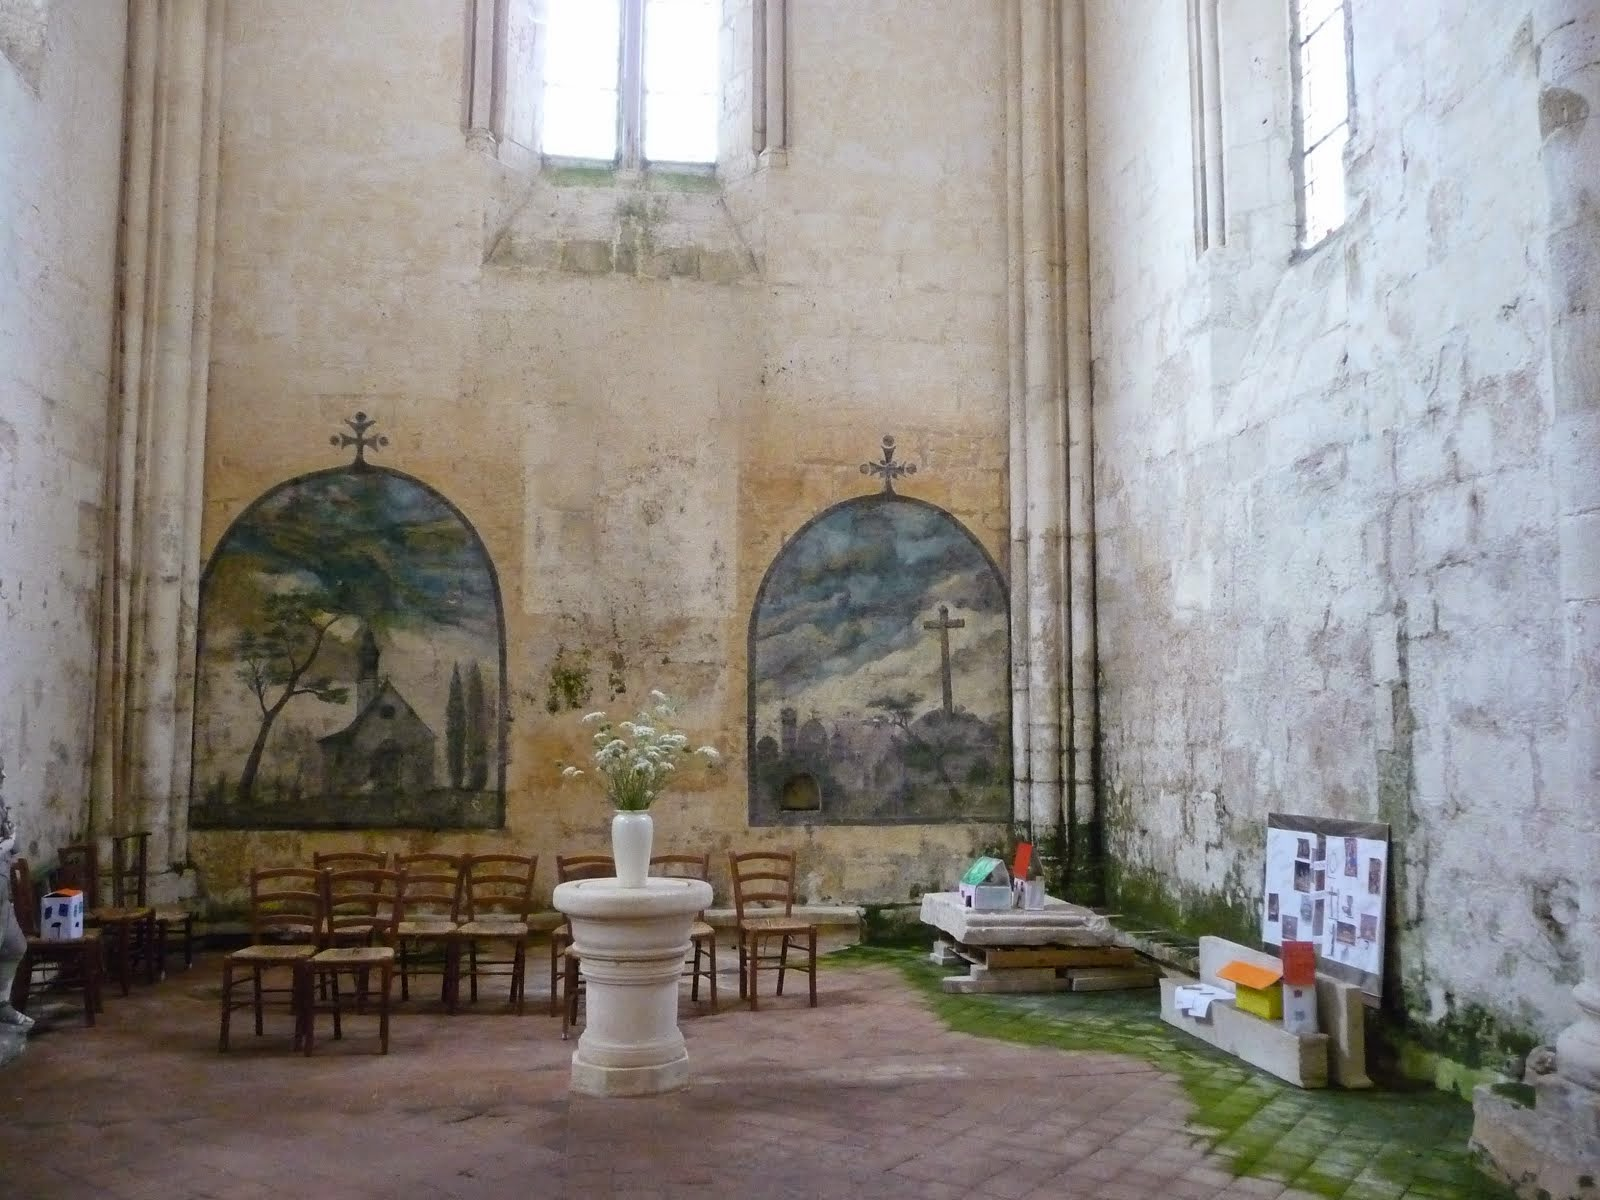 Murals in Blanzac church